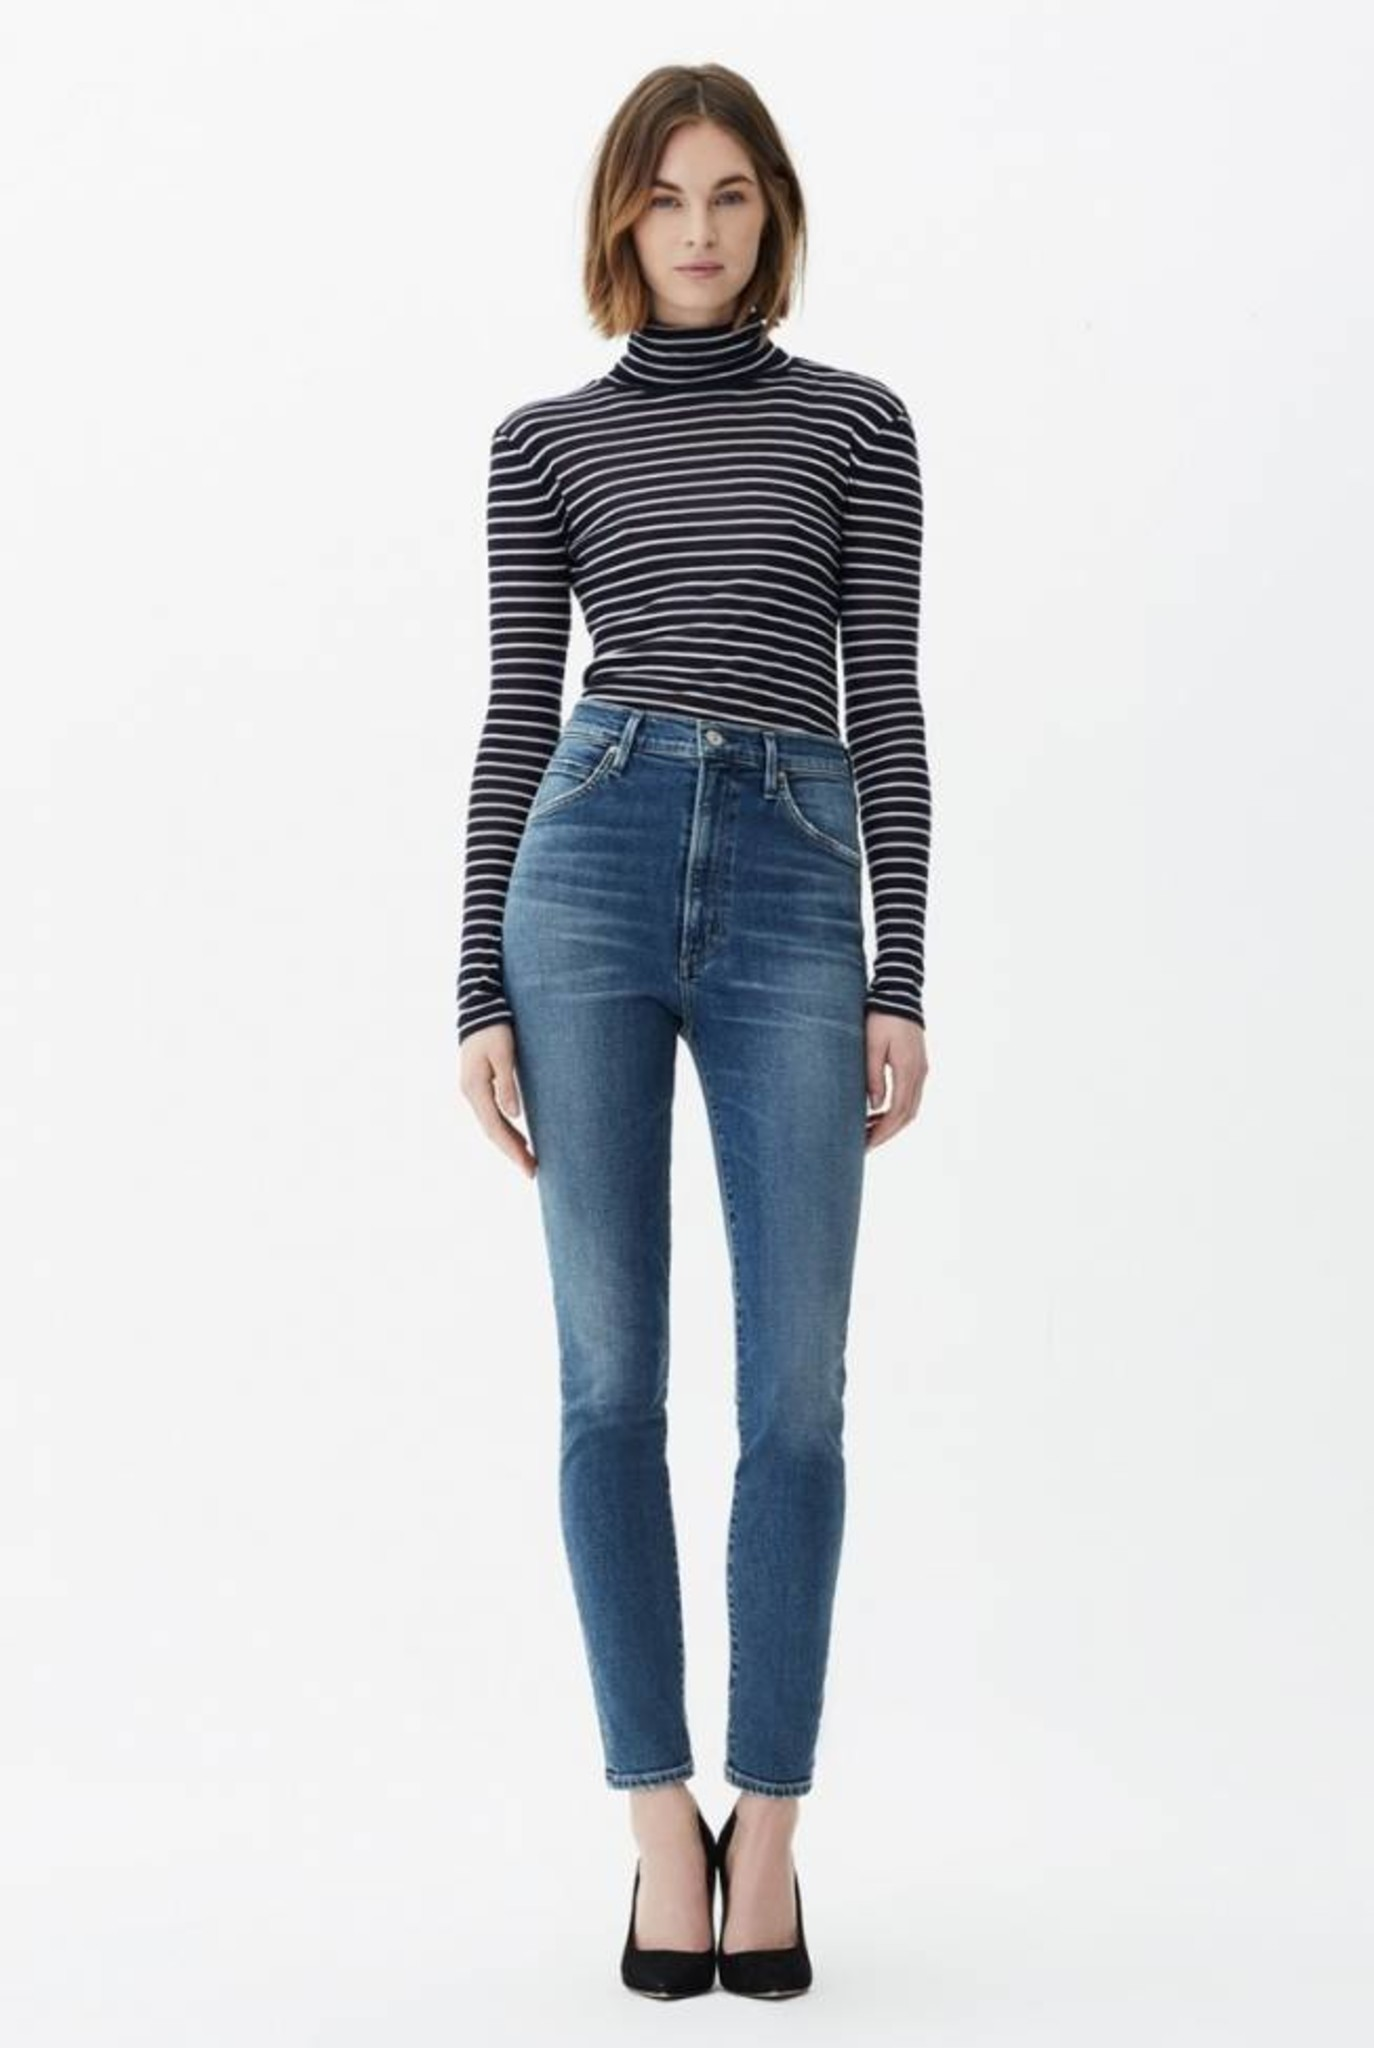 Chrissy jeans Orbit